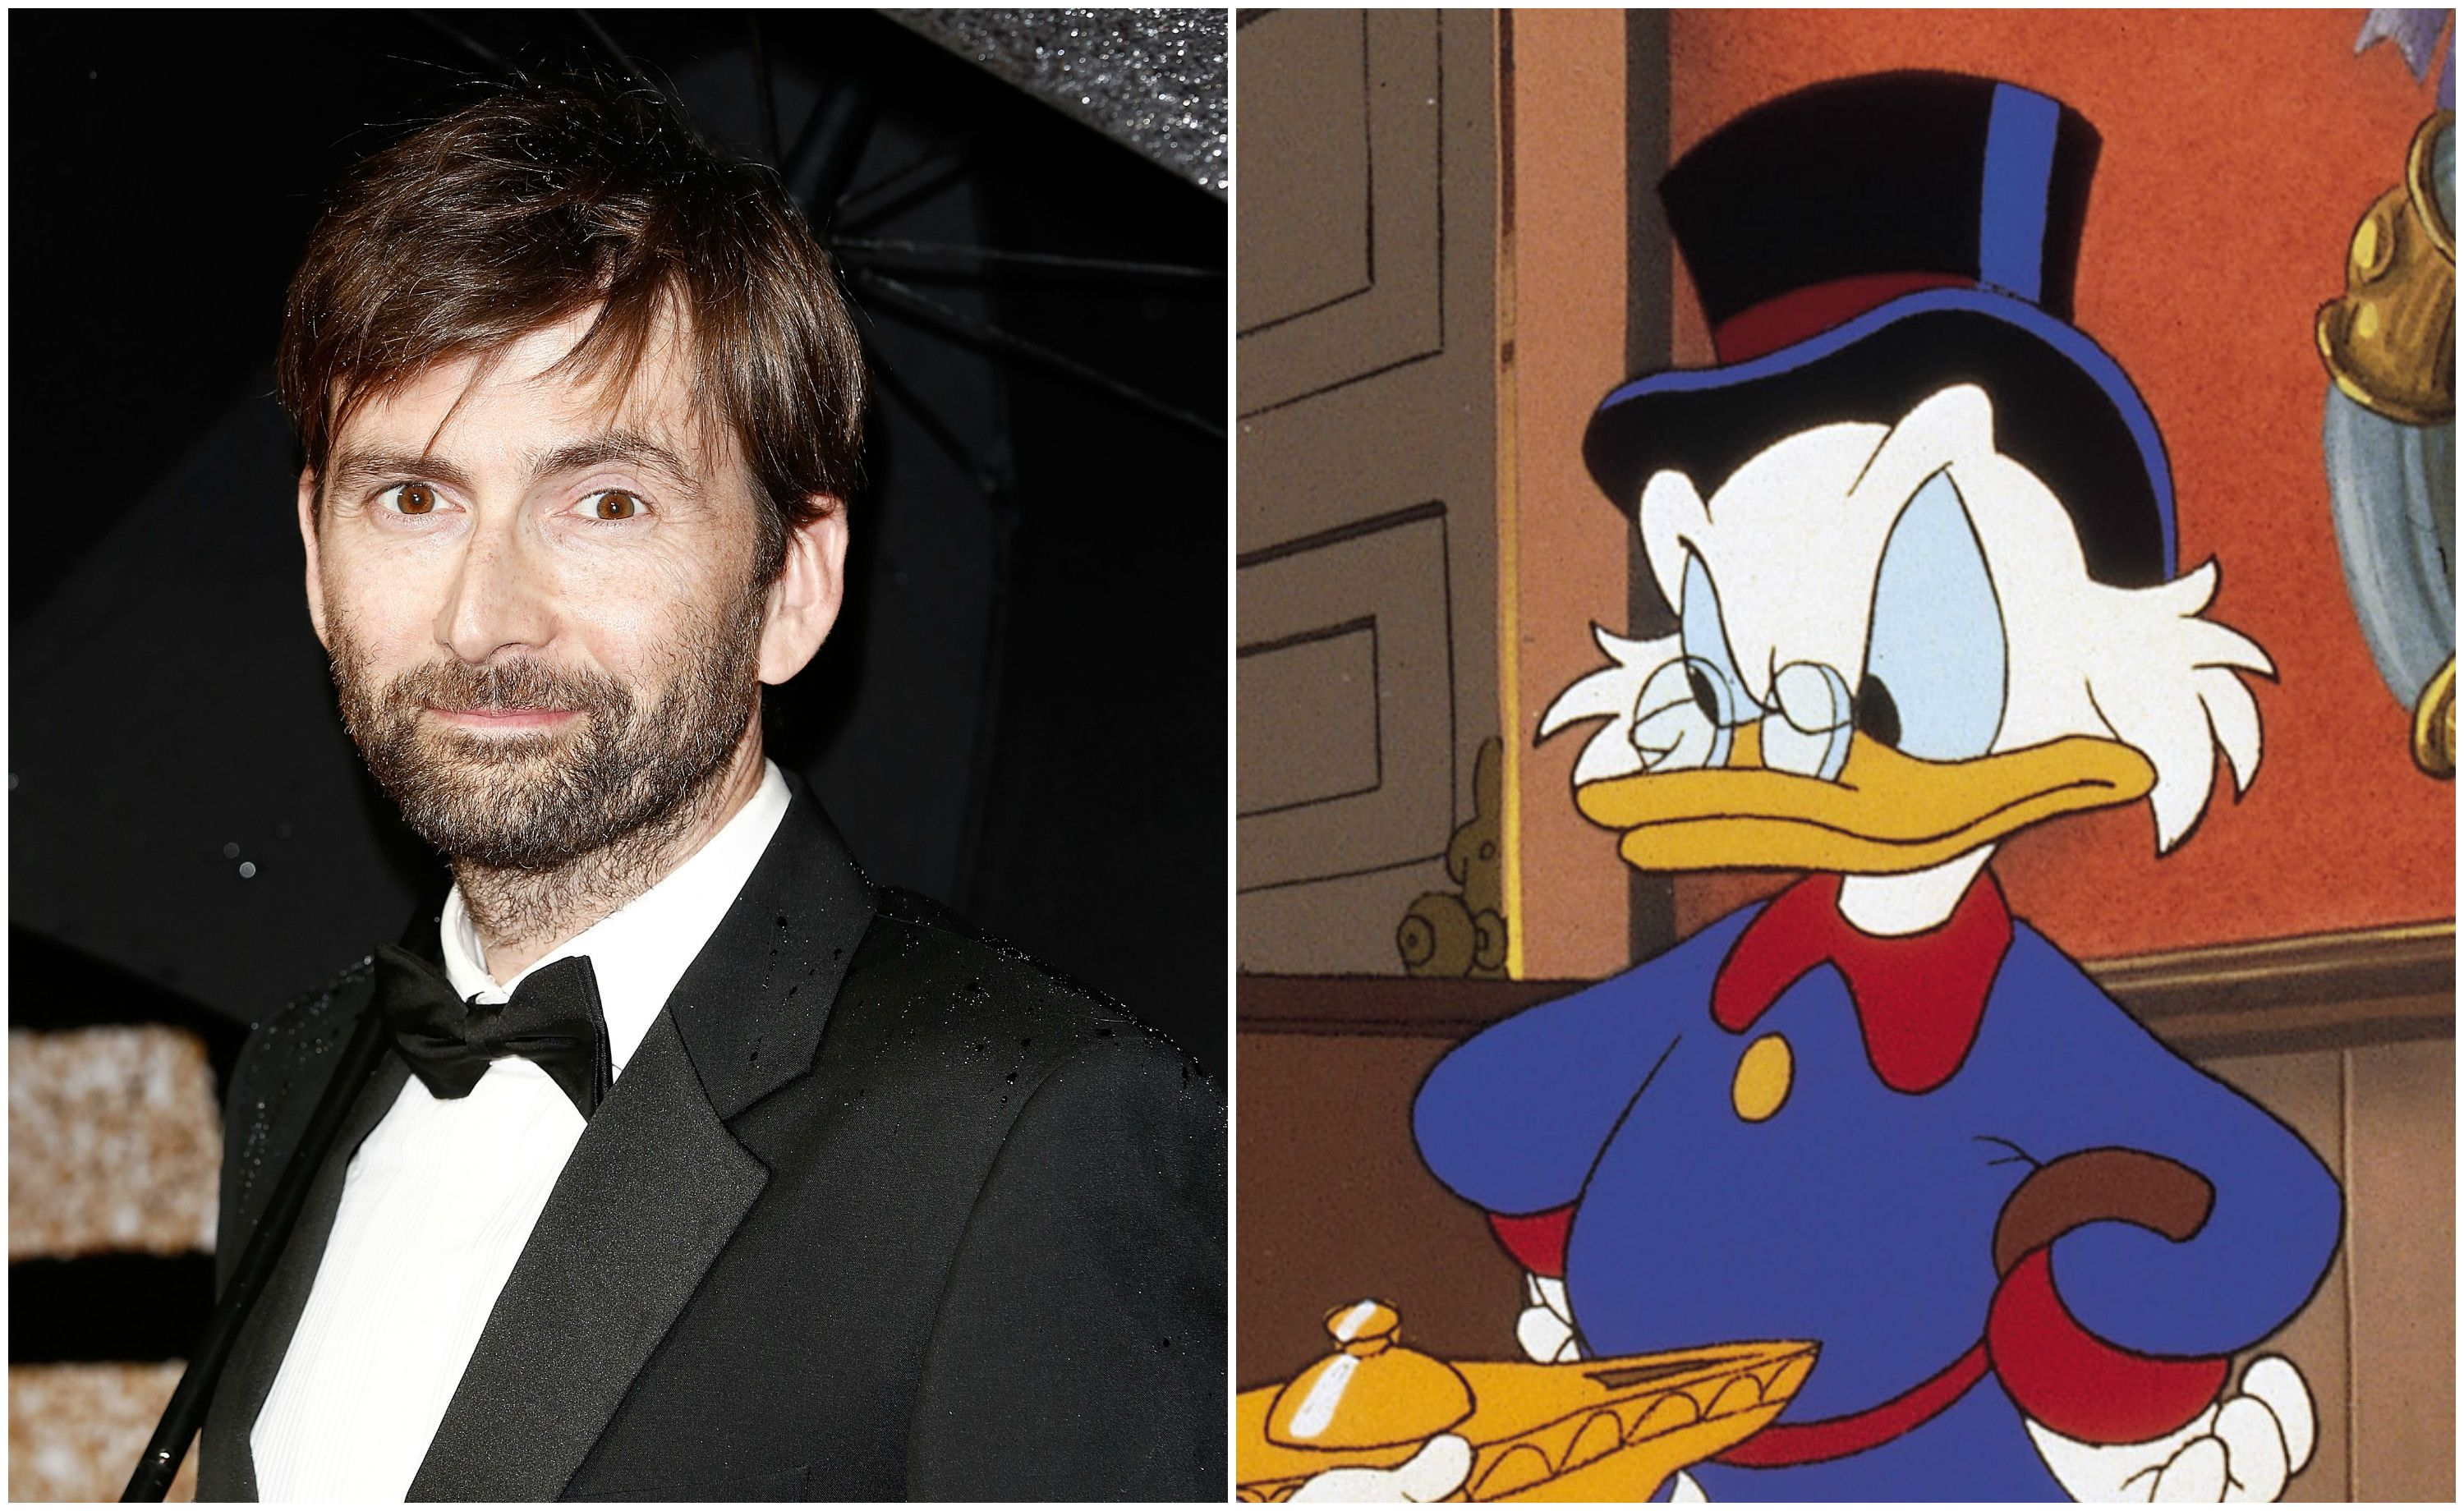 Oh yes! David Tennant is going to voice Scrooge McDuck in a